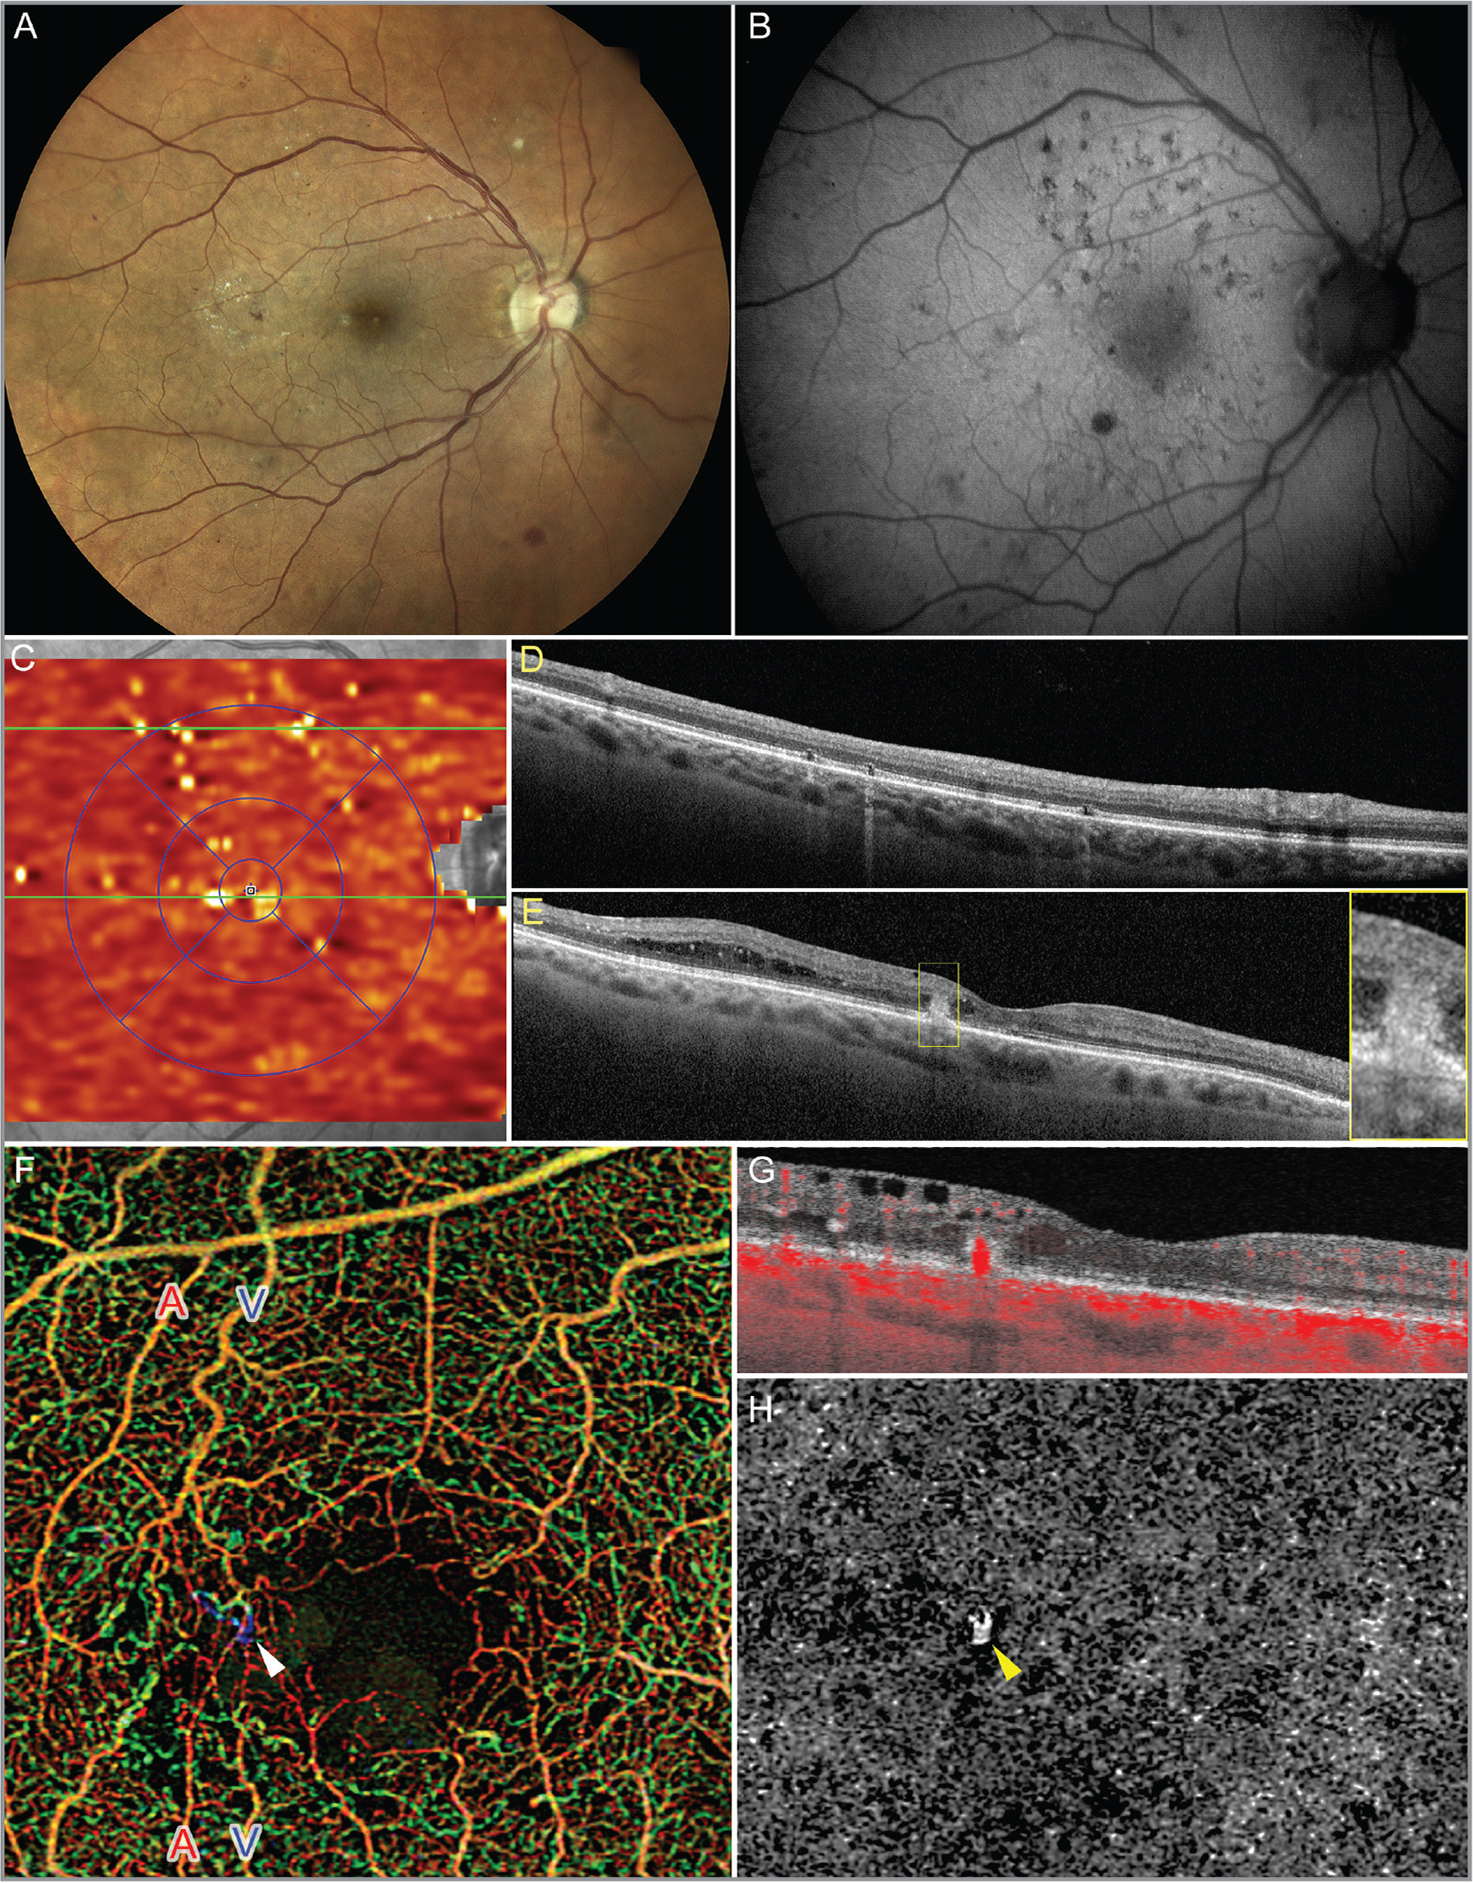 "Multimodal imaging of the right eye. (A) Confocal true color fundus photograph shows findings of nonproliferative diabetic retinopathy including scattered intraretinal hemorrhages and lipid exudates temporal to the fovea. (B) Fundus autofluorescence and (C) en face structural slab from the retinal pigment epithelium (RPE) to Bruch's membrane obtained using the in-built segmentation software of the Spectralis HRA+OCT aligned to the near-infrared reflectance image both show evidence of prior focal/grid laser. (D, E) Optical coherence tomography (OCT) B-scans corresponding to the green lines in C. (D) A representative OCT B-scan from the superior macula shows discontinuity of ellipsoid and interdigitation zones at the site of prior laser. (E) Central OCT B-scan shows temporal retinal thickening and a hyperreflective intraretinal lesion extending from the outer plexiform layer through a disrupted RPE/Bruch's membrane complex. (F) A 3 mm × 3 mm color retina depth-encoded OCT angiography (OCTA) image with two veins labeled as ""V"" and two arteries labeled as ""A."" The vascular complex is marked with a white arrowhead. The presence of vascular flow is seen as red overlay on a corresponding cross-sectional OCT B-scan (G), and the default outer retina to choriocapillaris (ORCC) slab (H) marked with a yellow arrowhead."